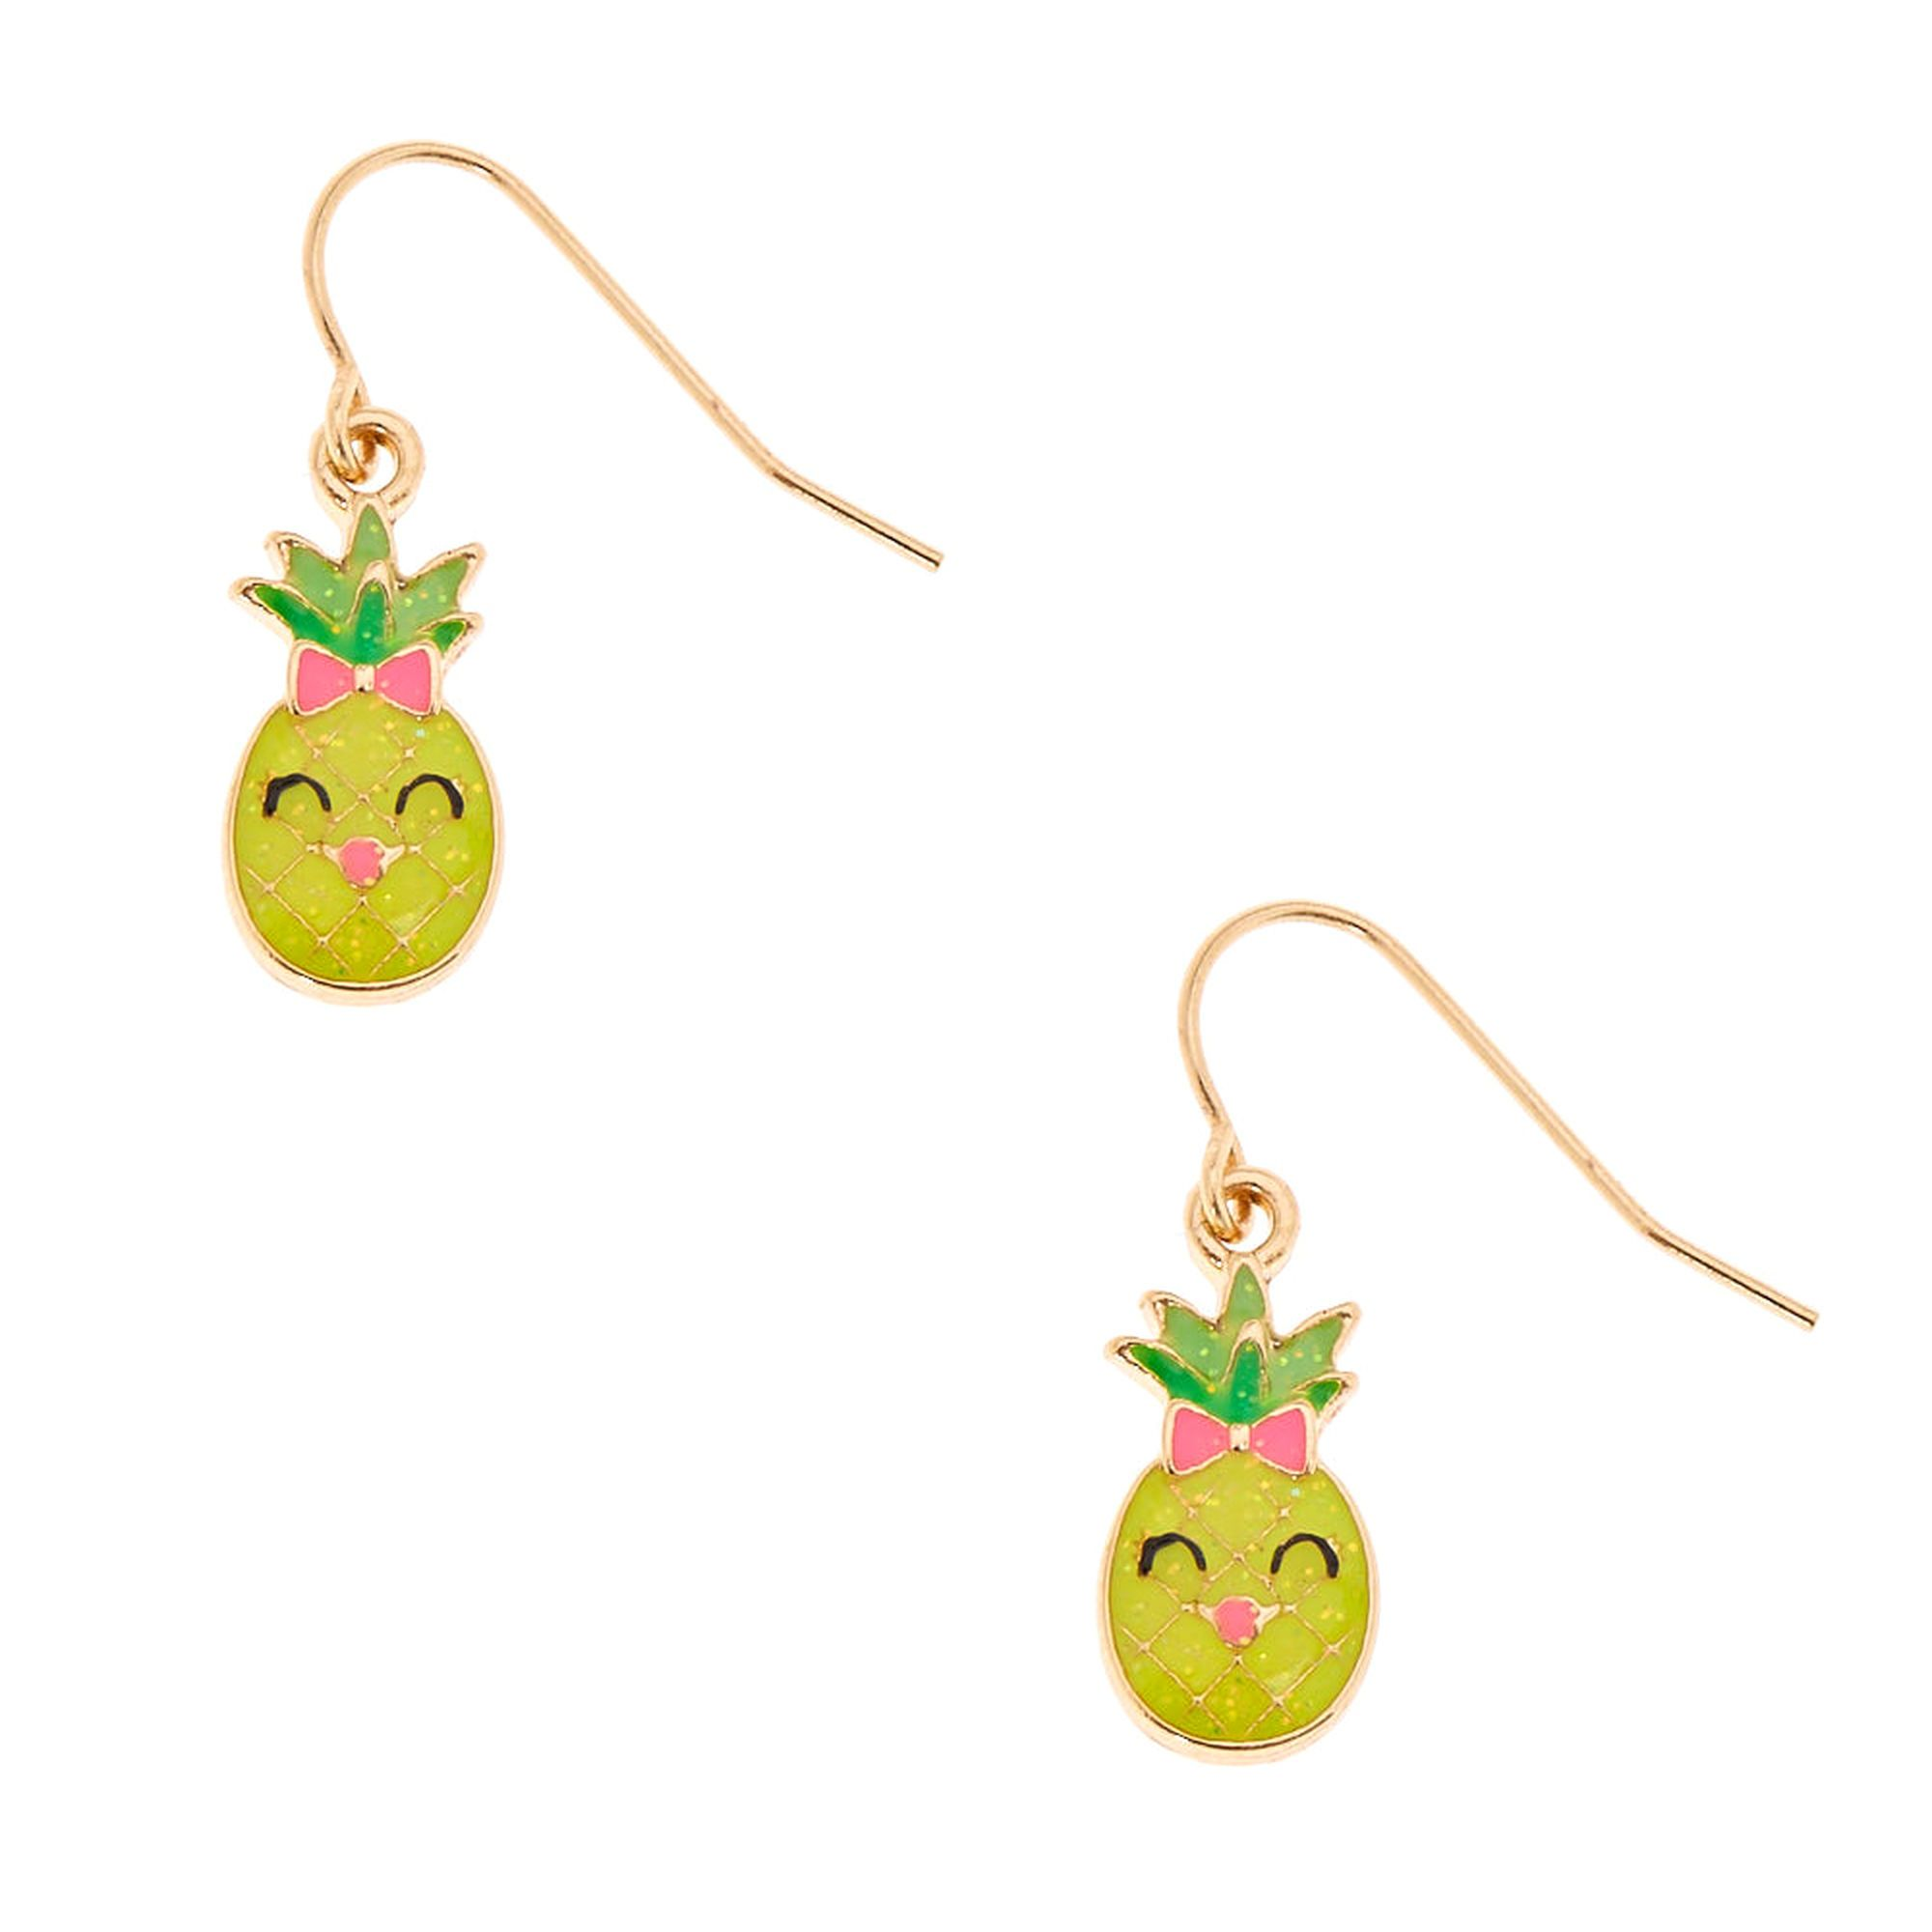 5048aab77 Claire's Happy Pineapple Drop Earrings | Virtual Closet ...